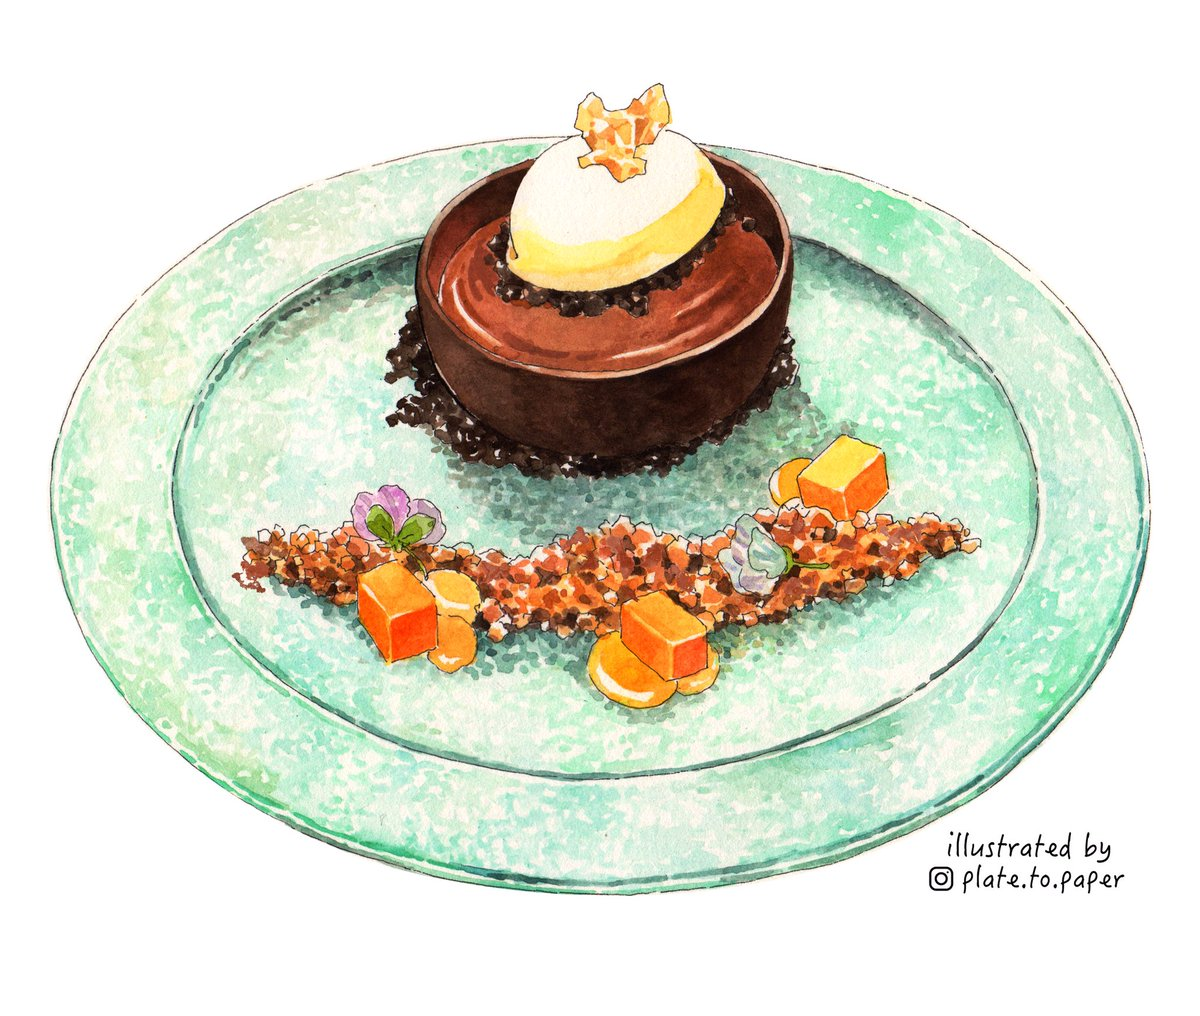 Journal entry about the competition, the dessert and reflections finally up!  http:// bit.ly/2wmMBut  &nbsp;   #thechefsforum #patisserie #chocolate<br>http://pic.twitter.com/h3Lh1Itt2l